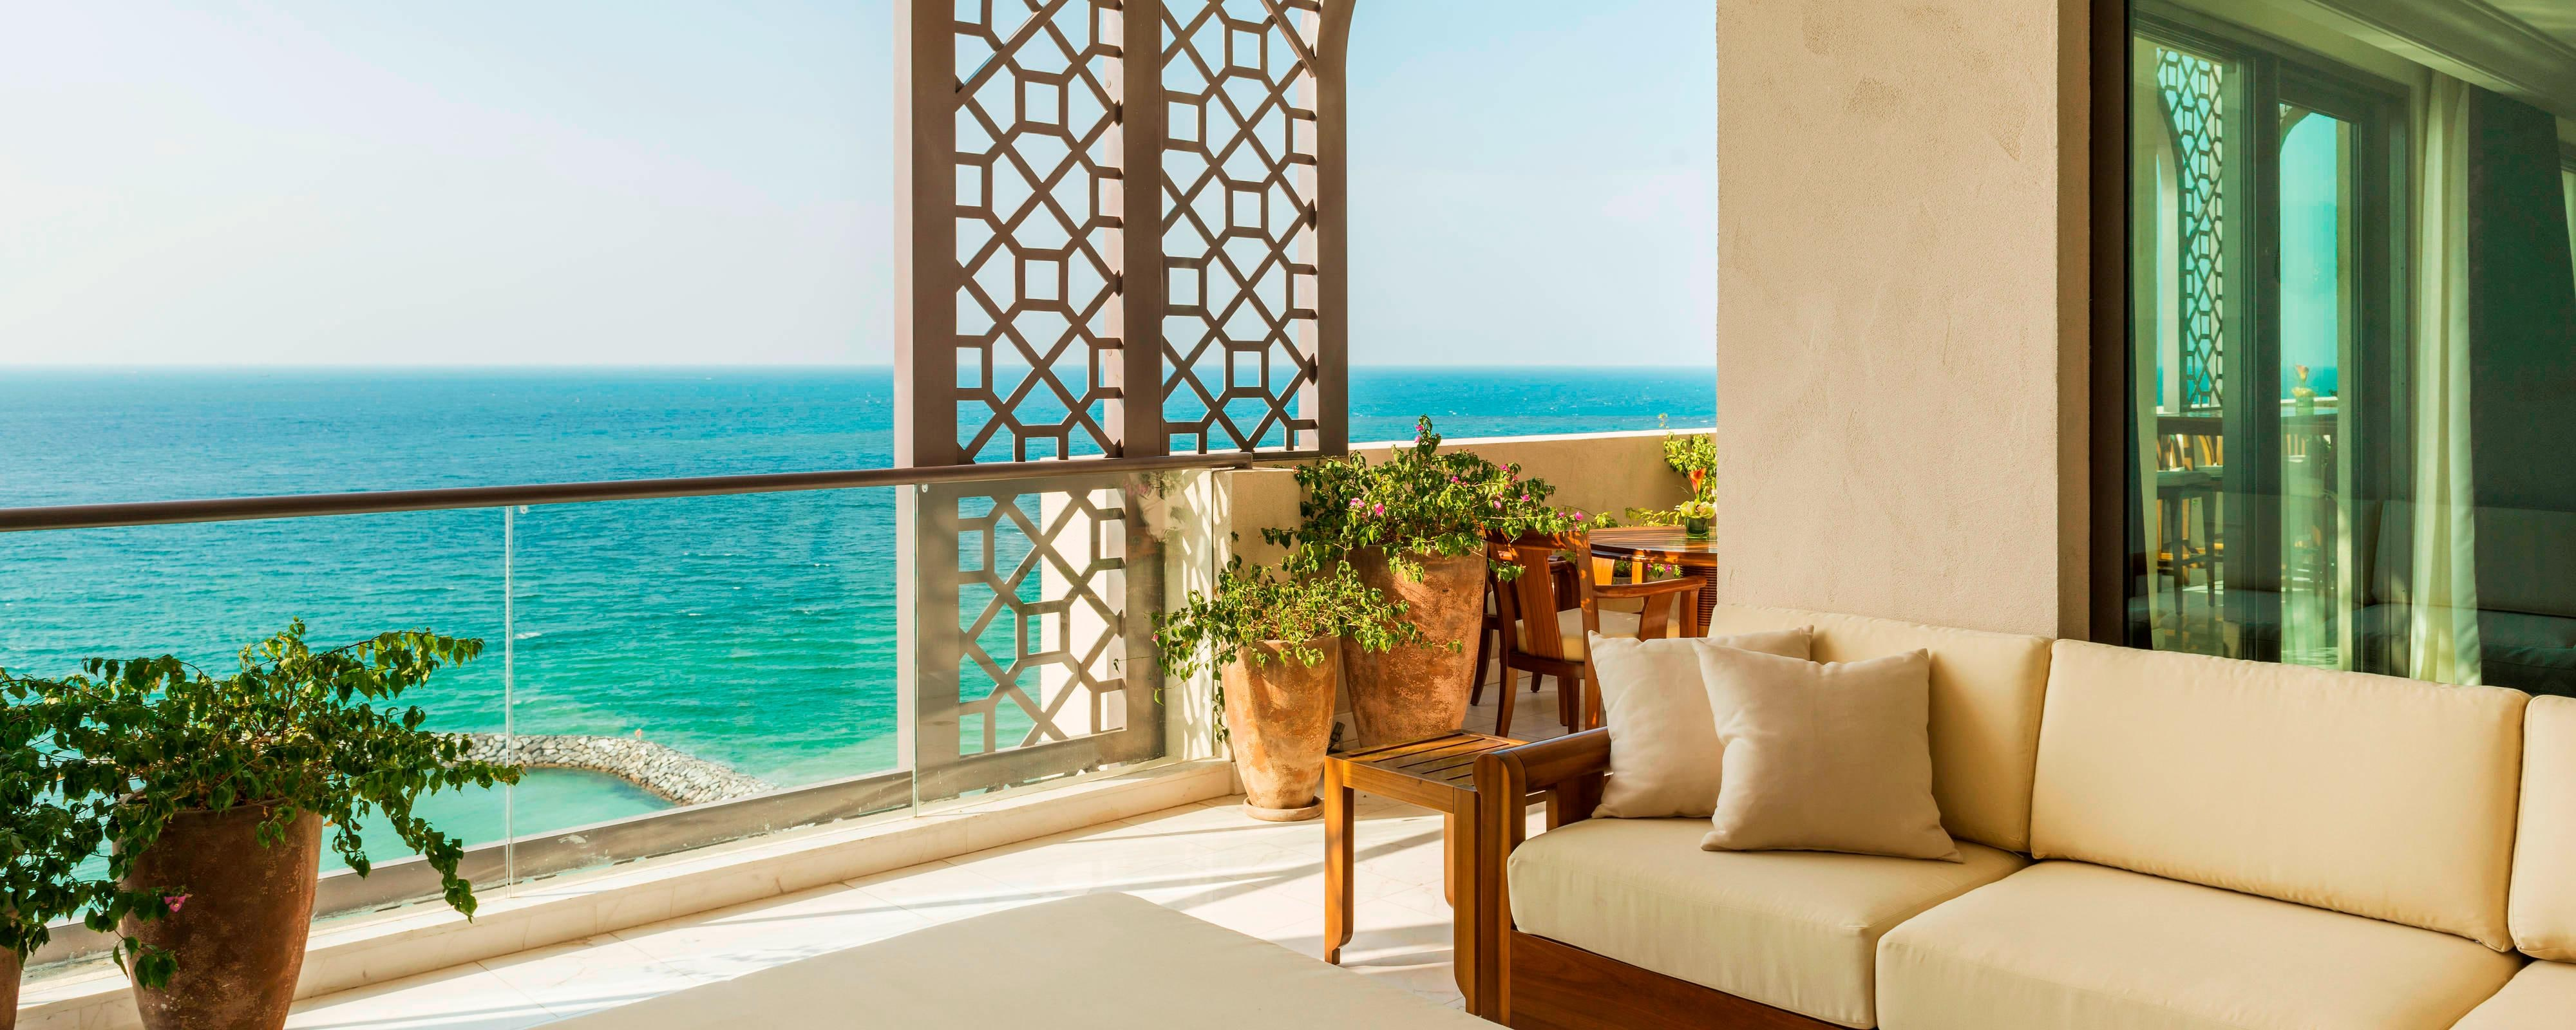 Ajman Saray - Balcony